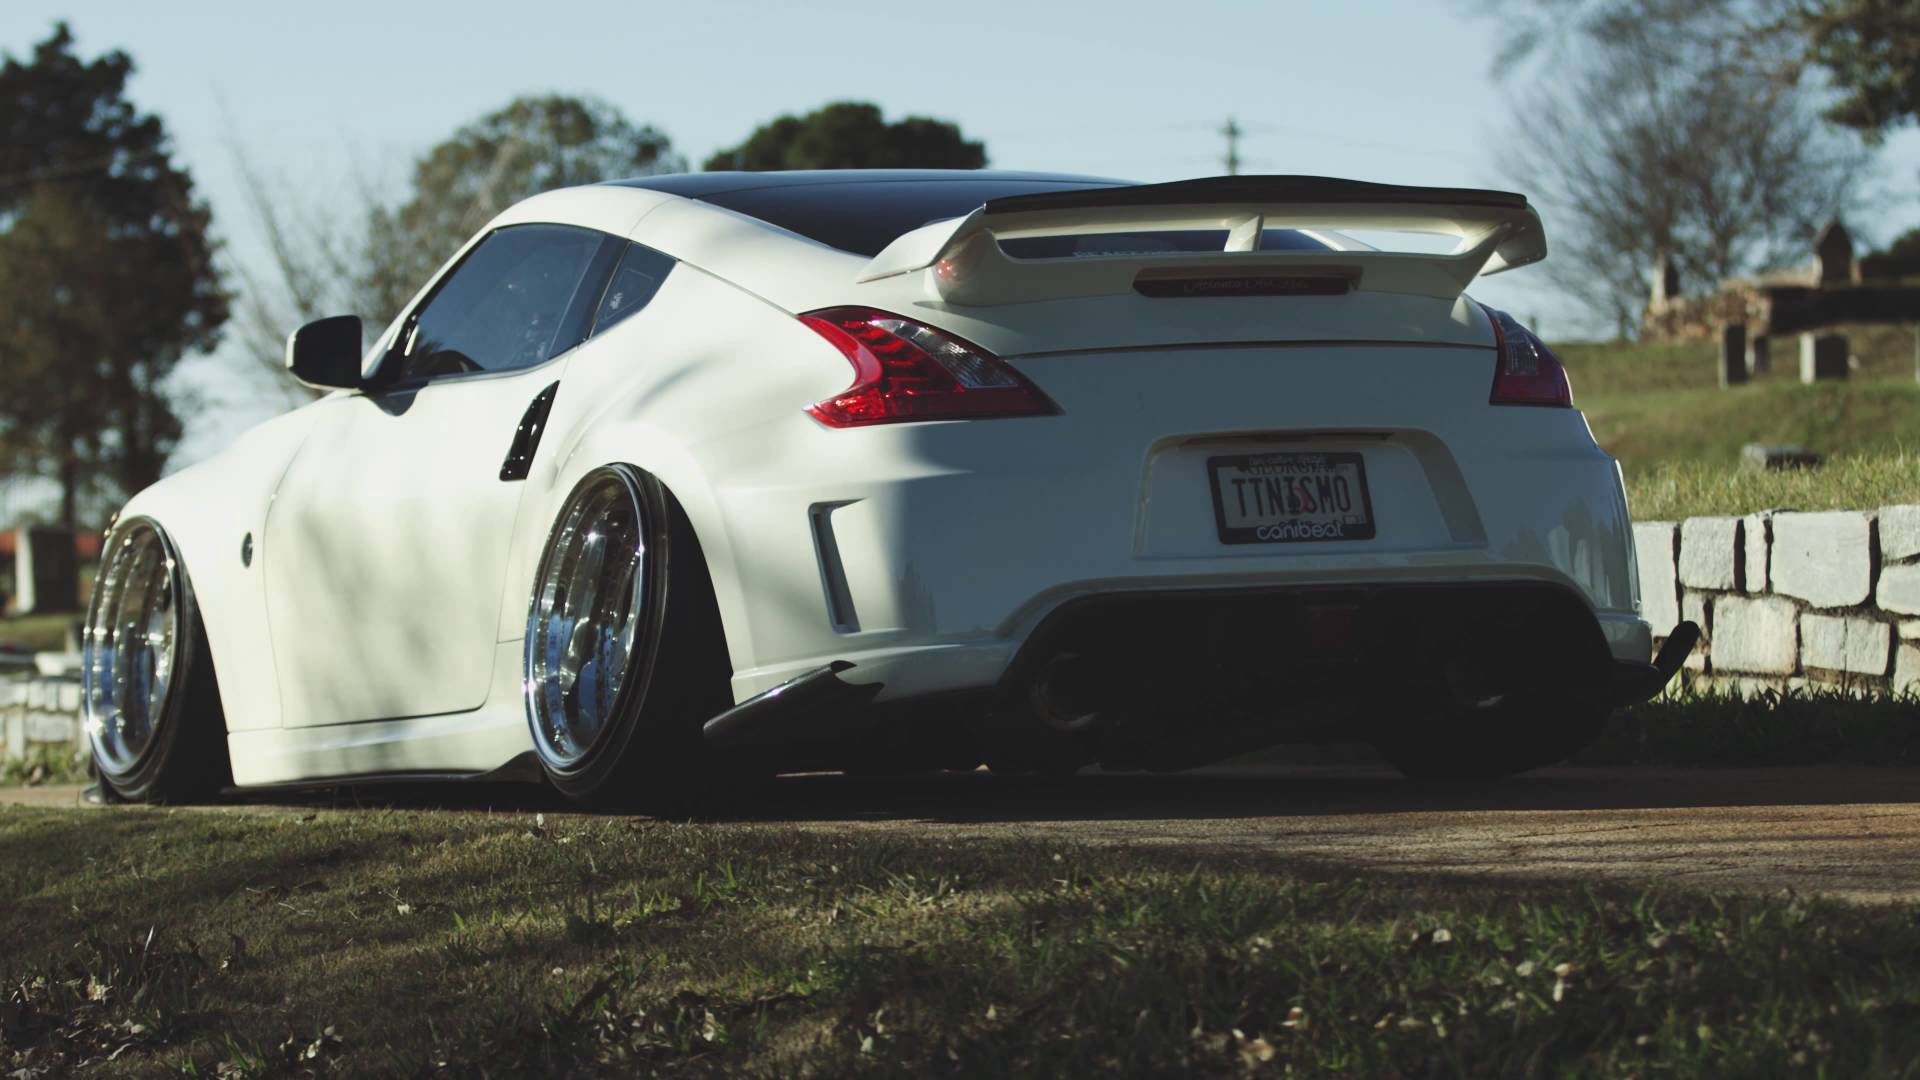 Bagged 370z in 4K // JUSTCAUSE